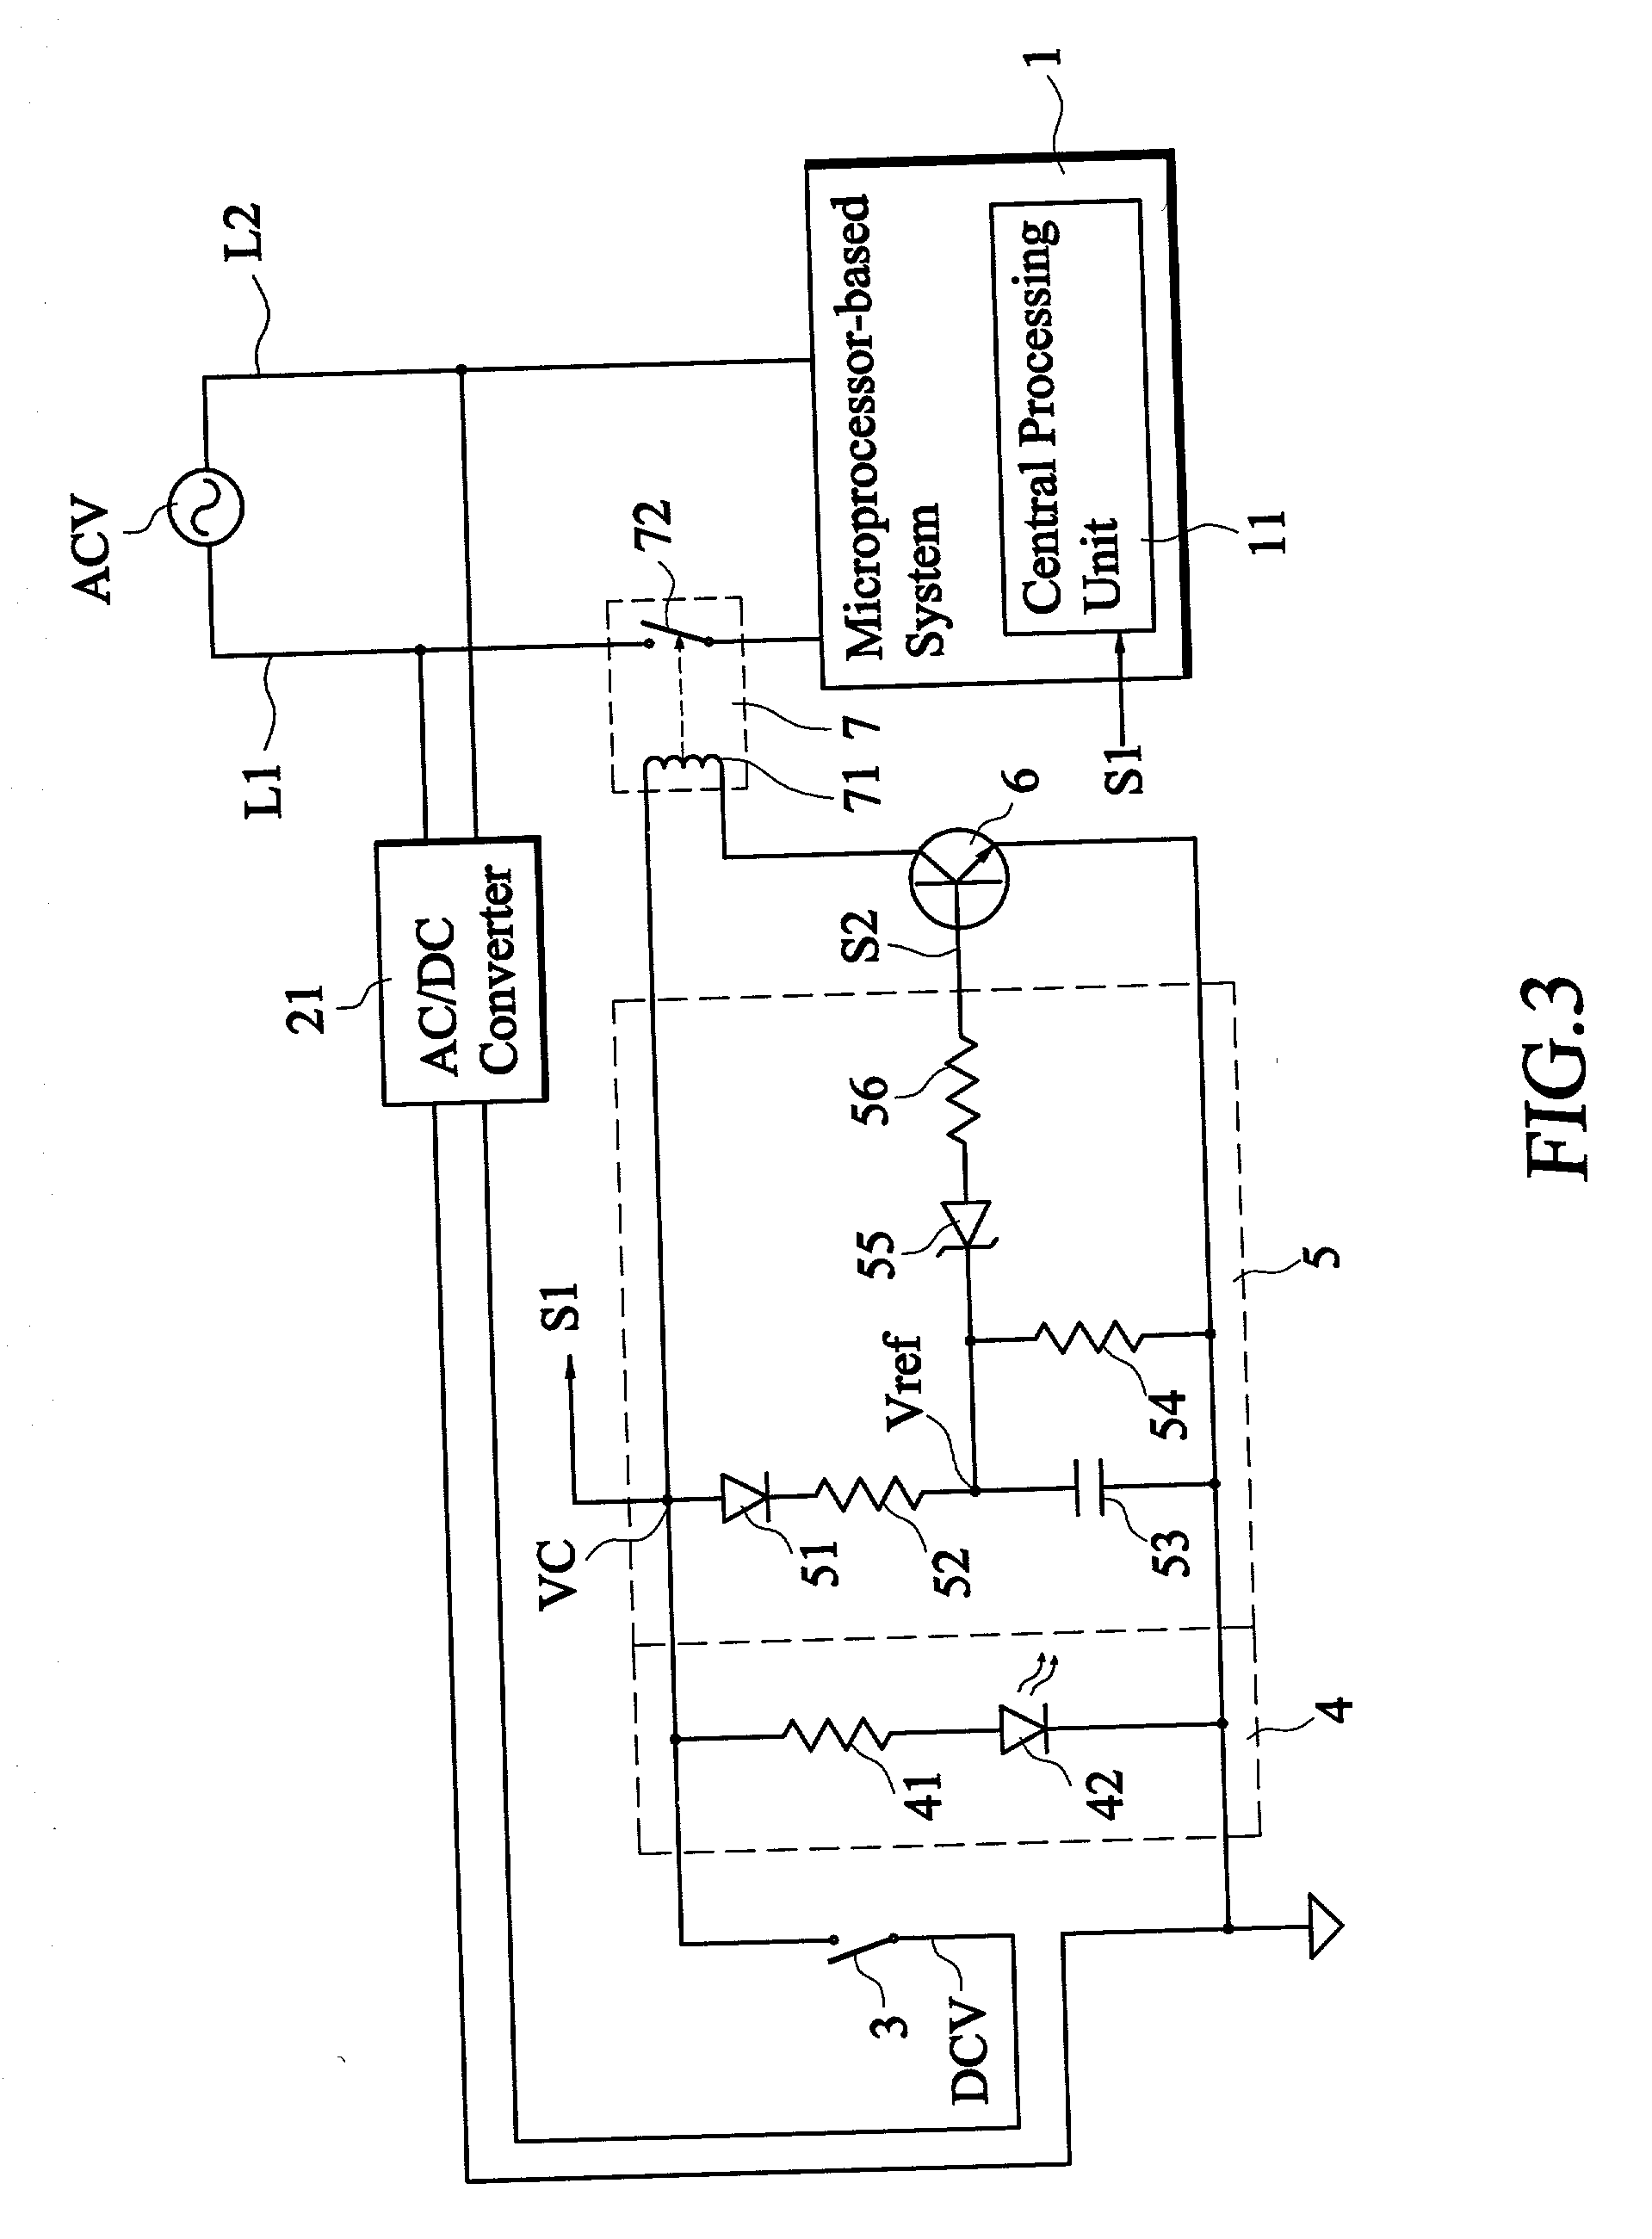 patent us20030111911 power control circuit with power off time Circuit Board patent drawing